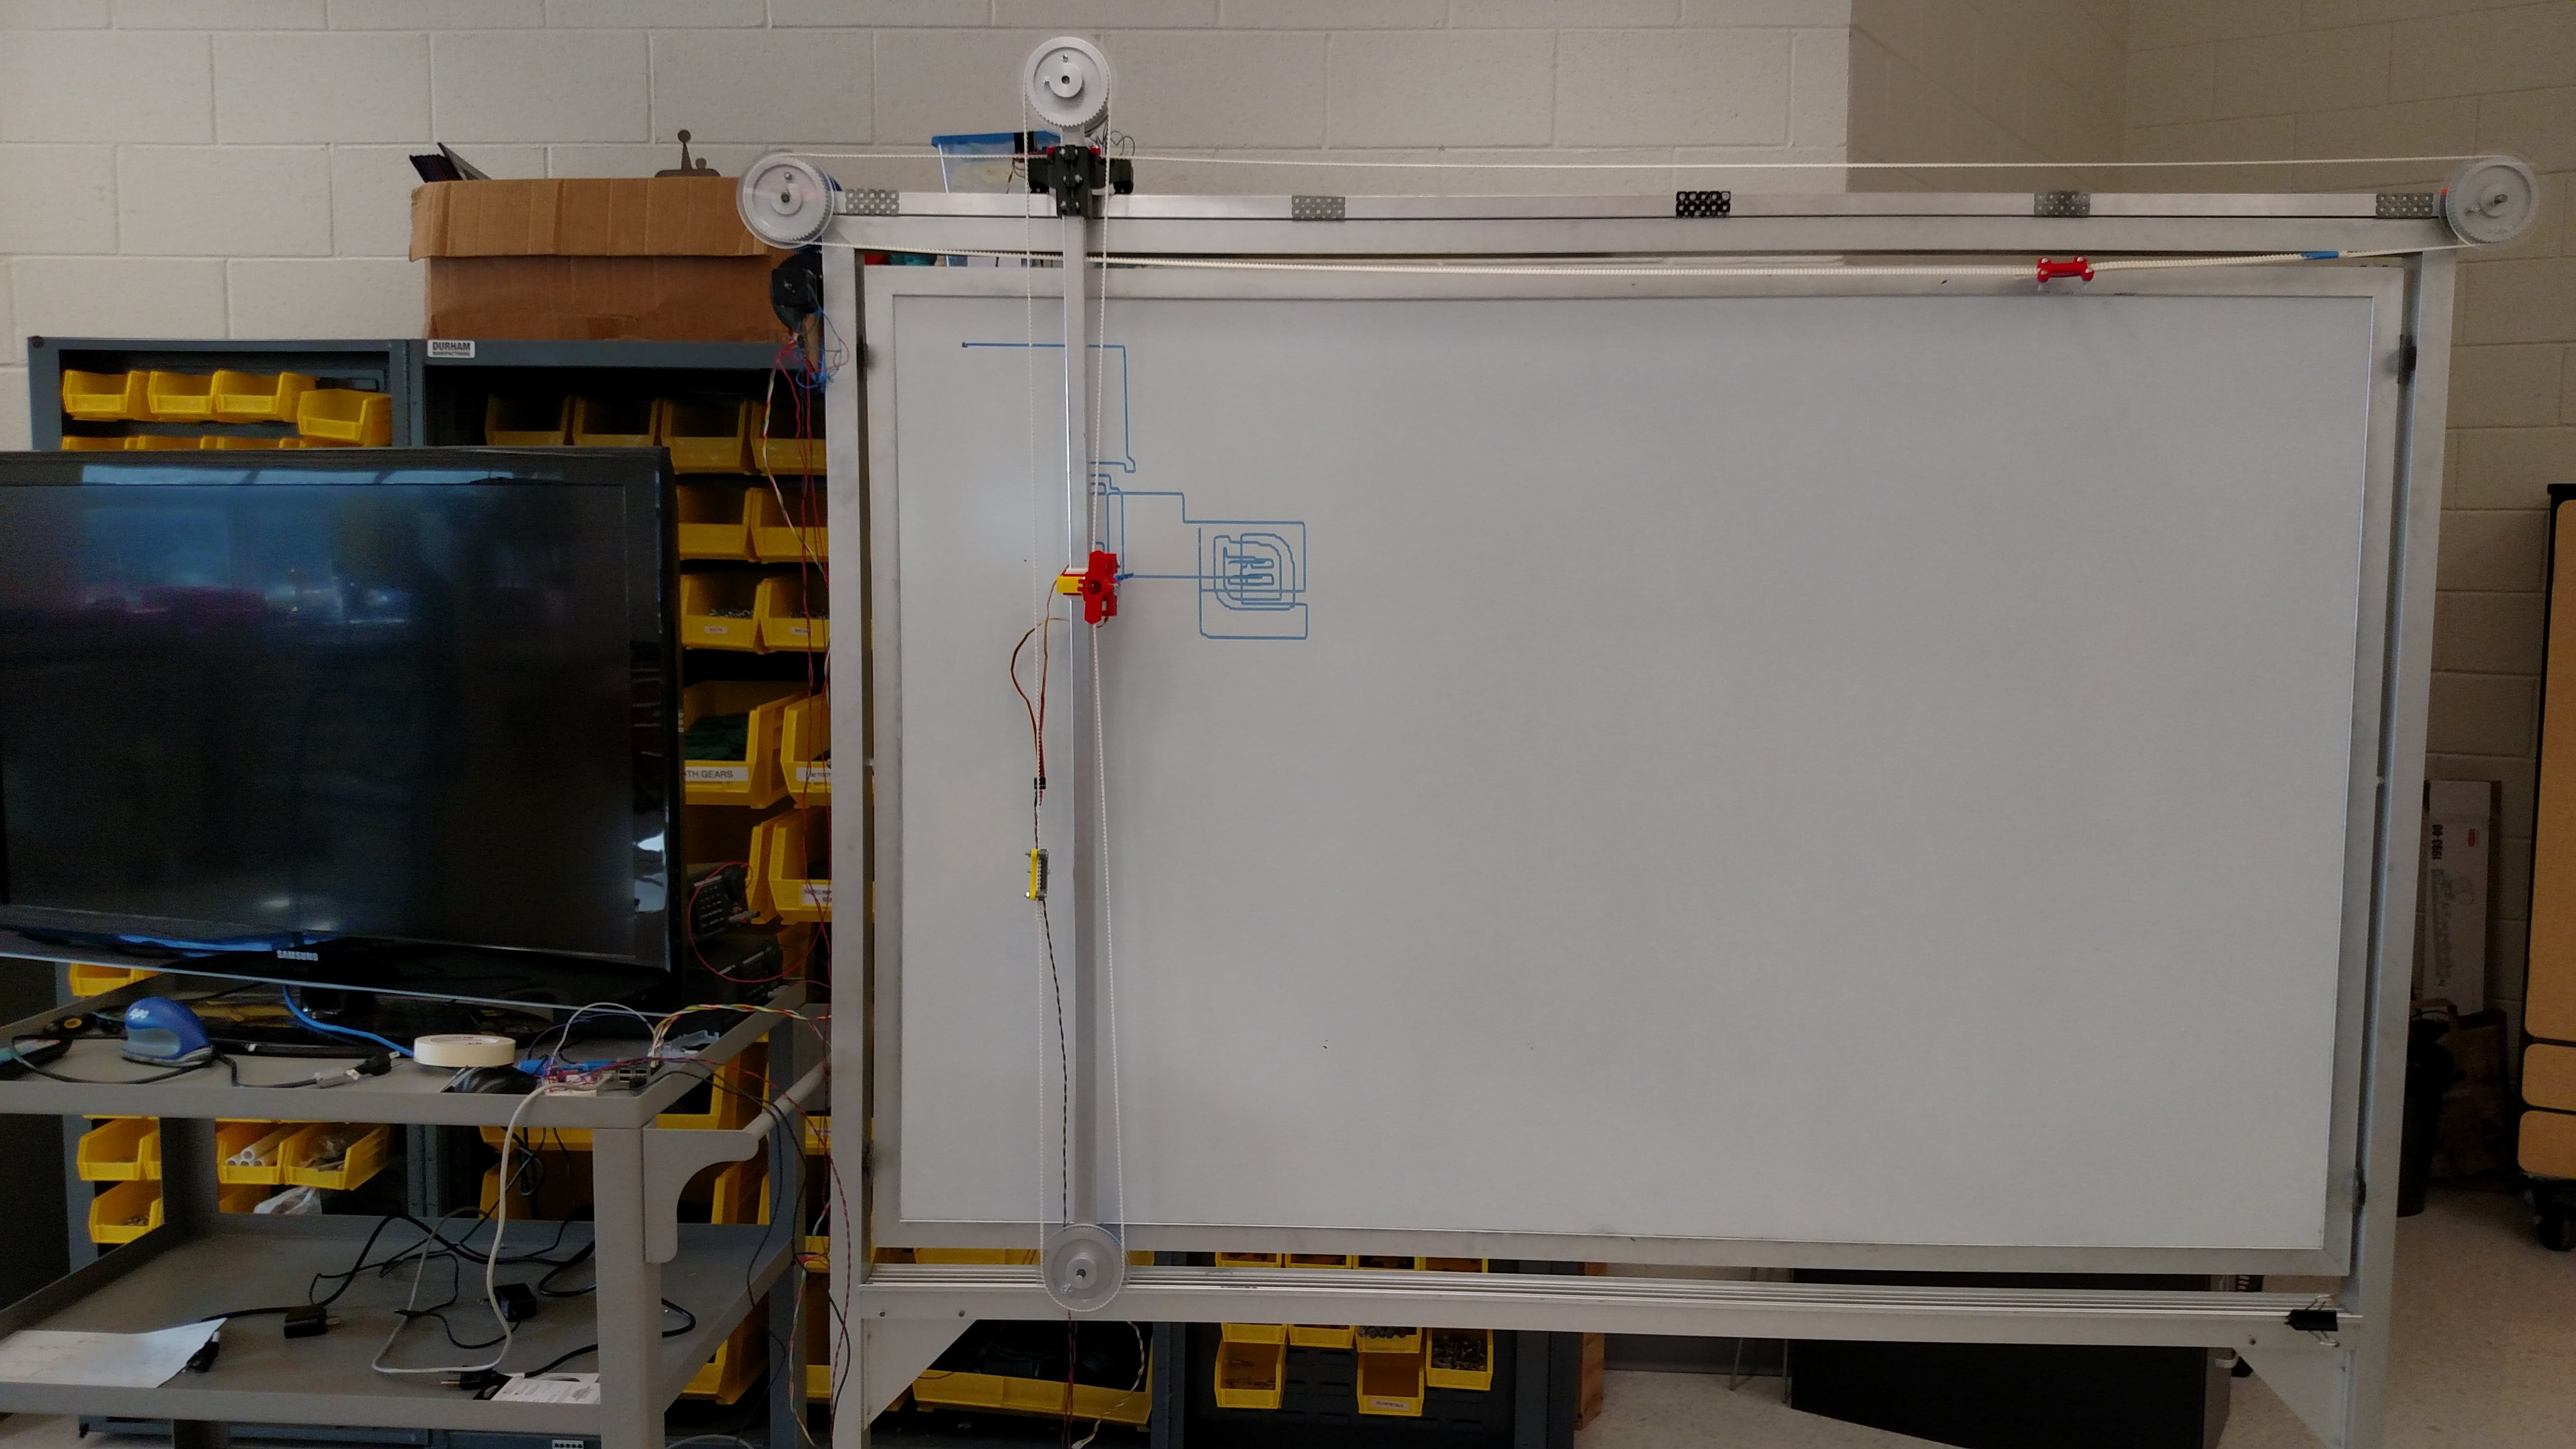 An image of the Etch-A-Whiteboard sketching a test file